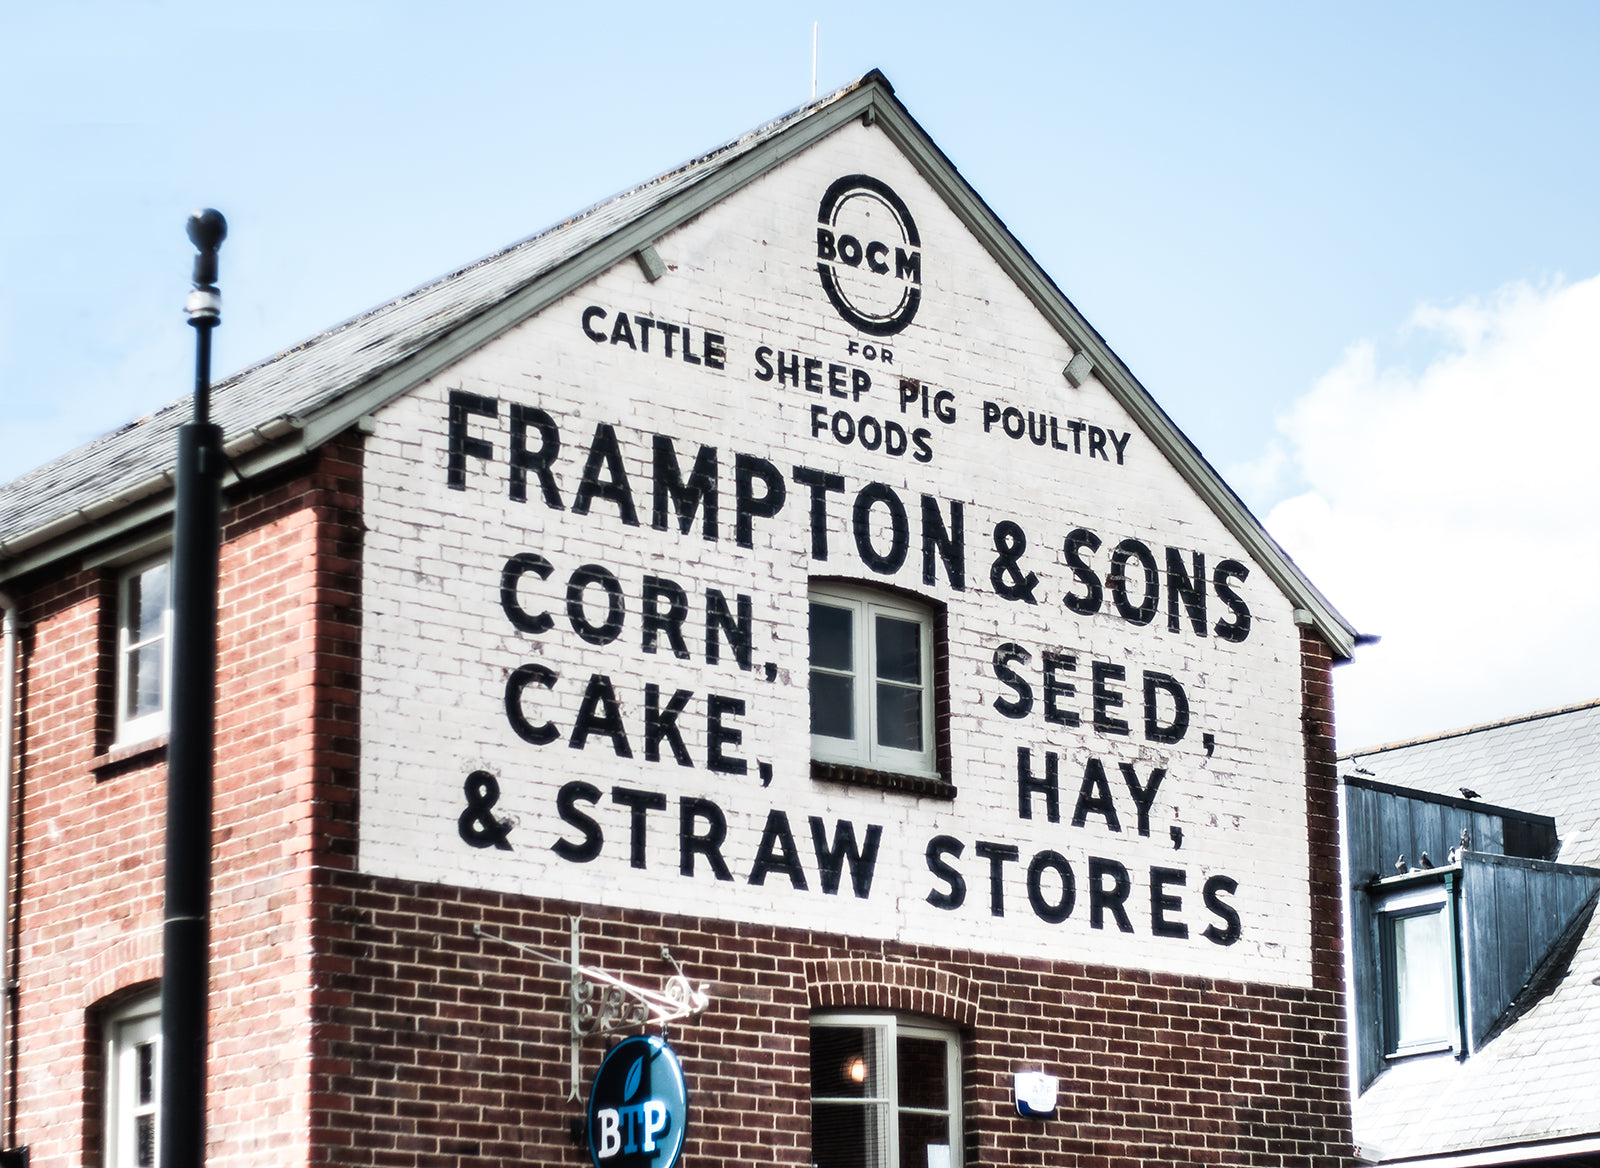 Frampton and Sons Feed Store Rustic Wall Art Print